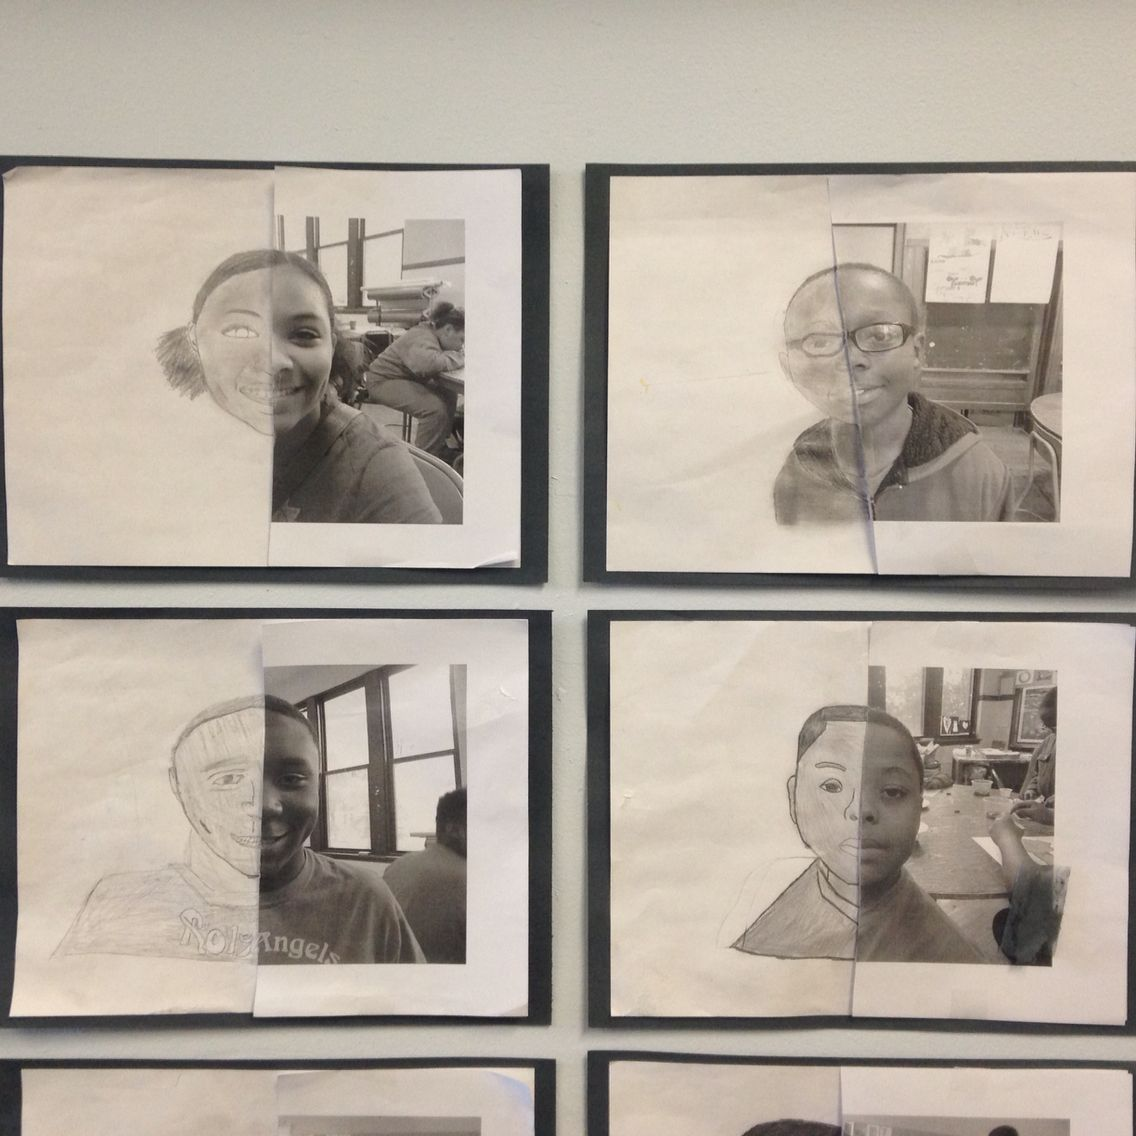 Finish your self portraits in pencil 6-8 grades explore value and true examination of facial structure